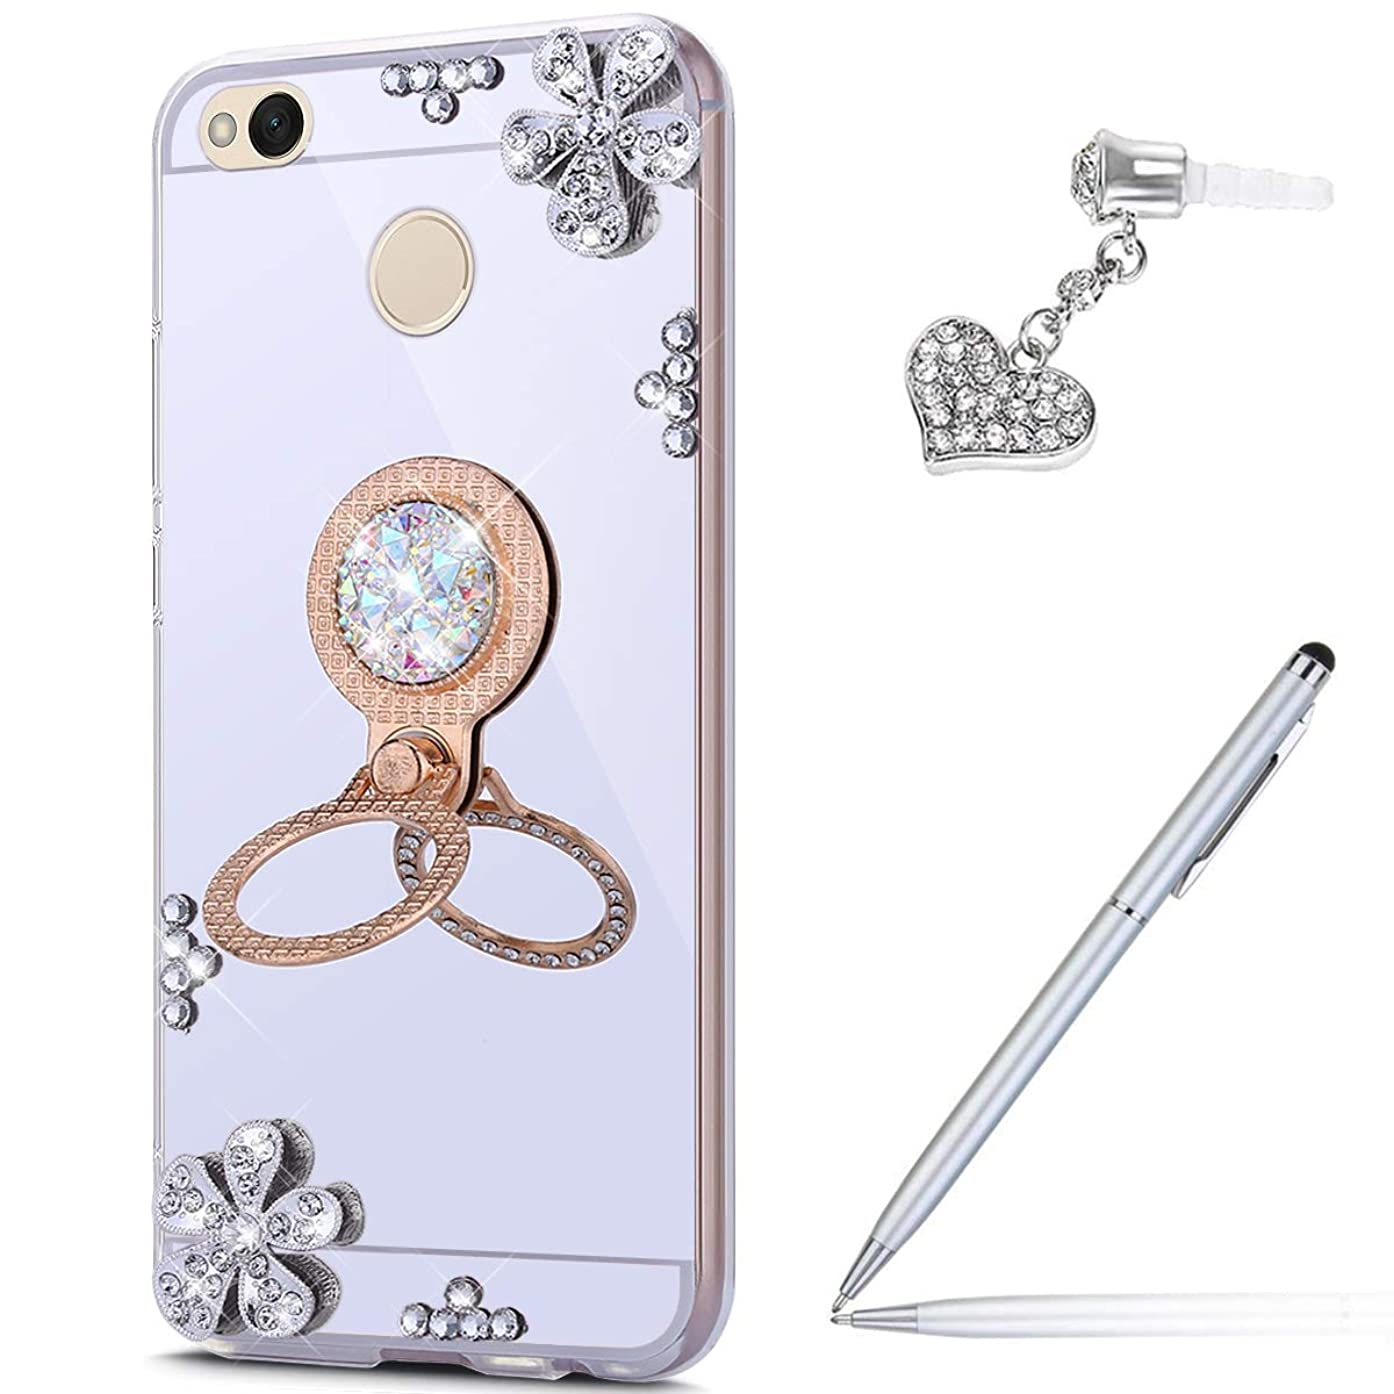 Case for Xiaomi Redmi 4X Diamond Case,Crystal Inlaid diamond Flowers Rhinestone Diamond Glitter Bling Mirror Back TPU Case & Ring Stand + Touch Pen Dust Plug for Xiaomi Redmi 4X Mirror Case,Silver